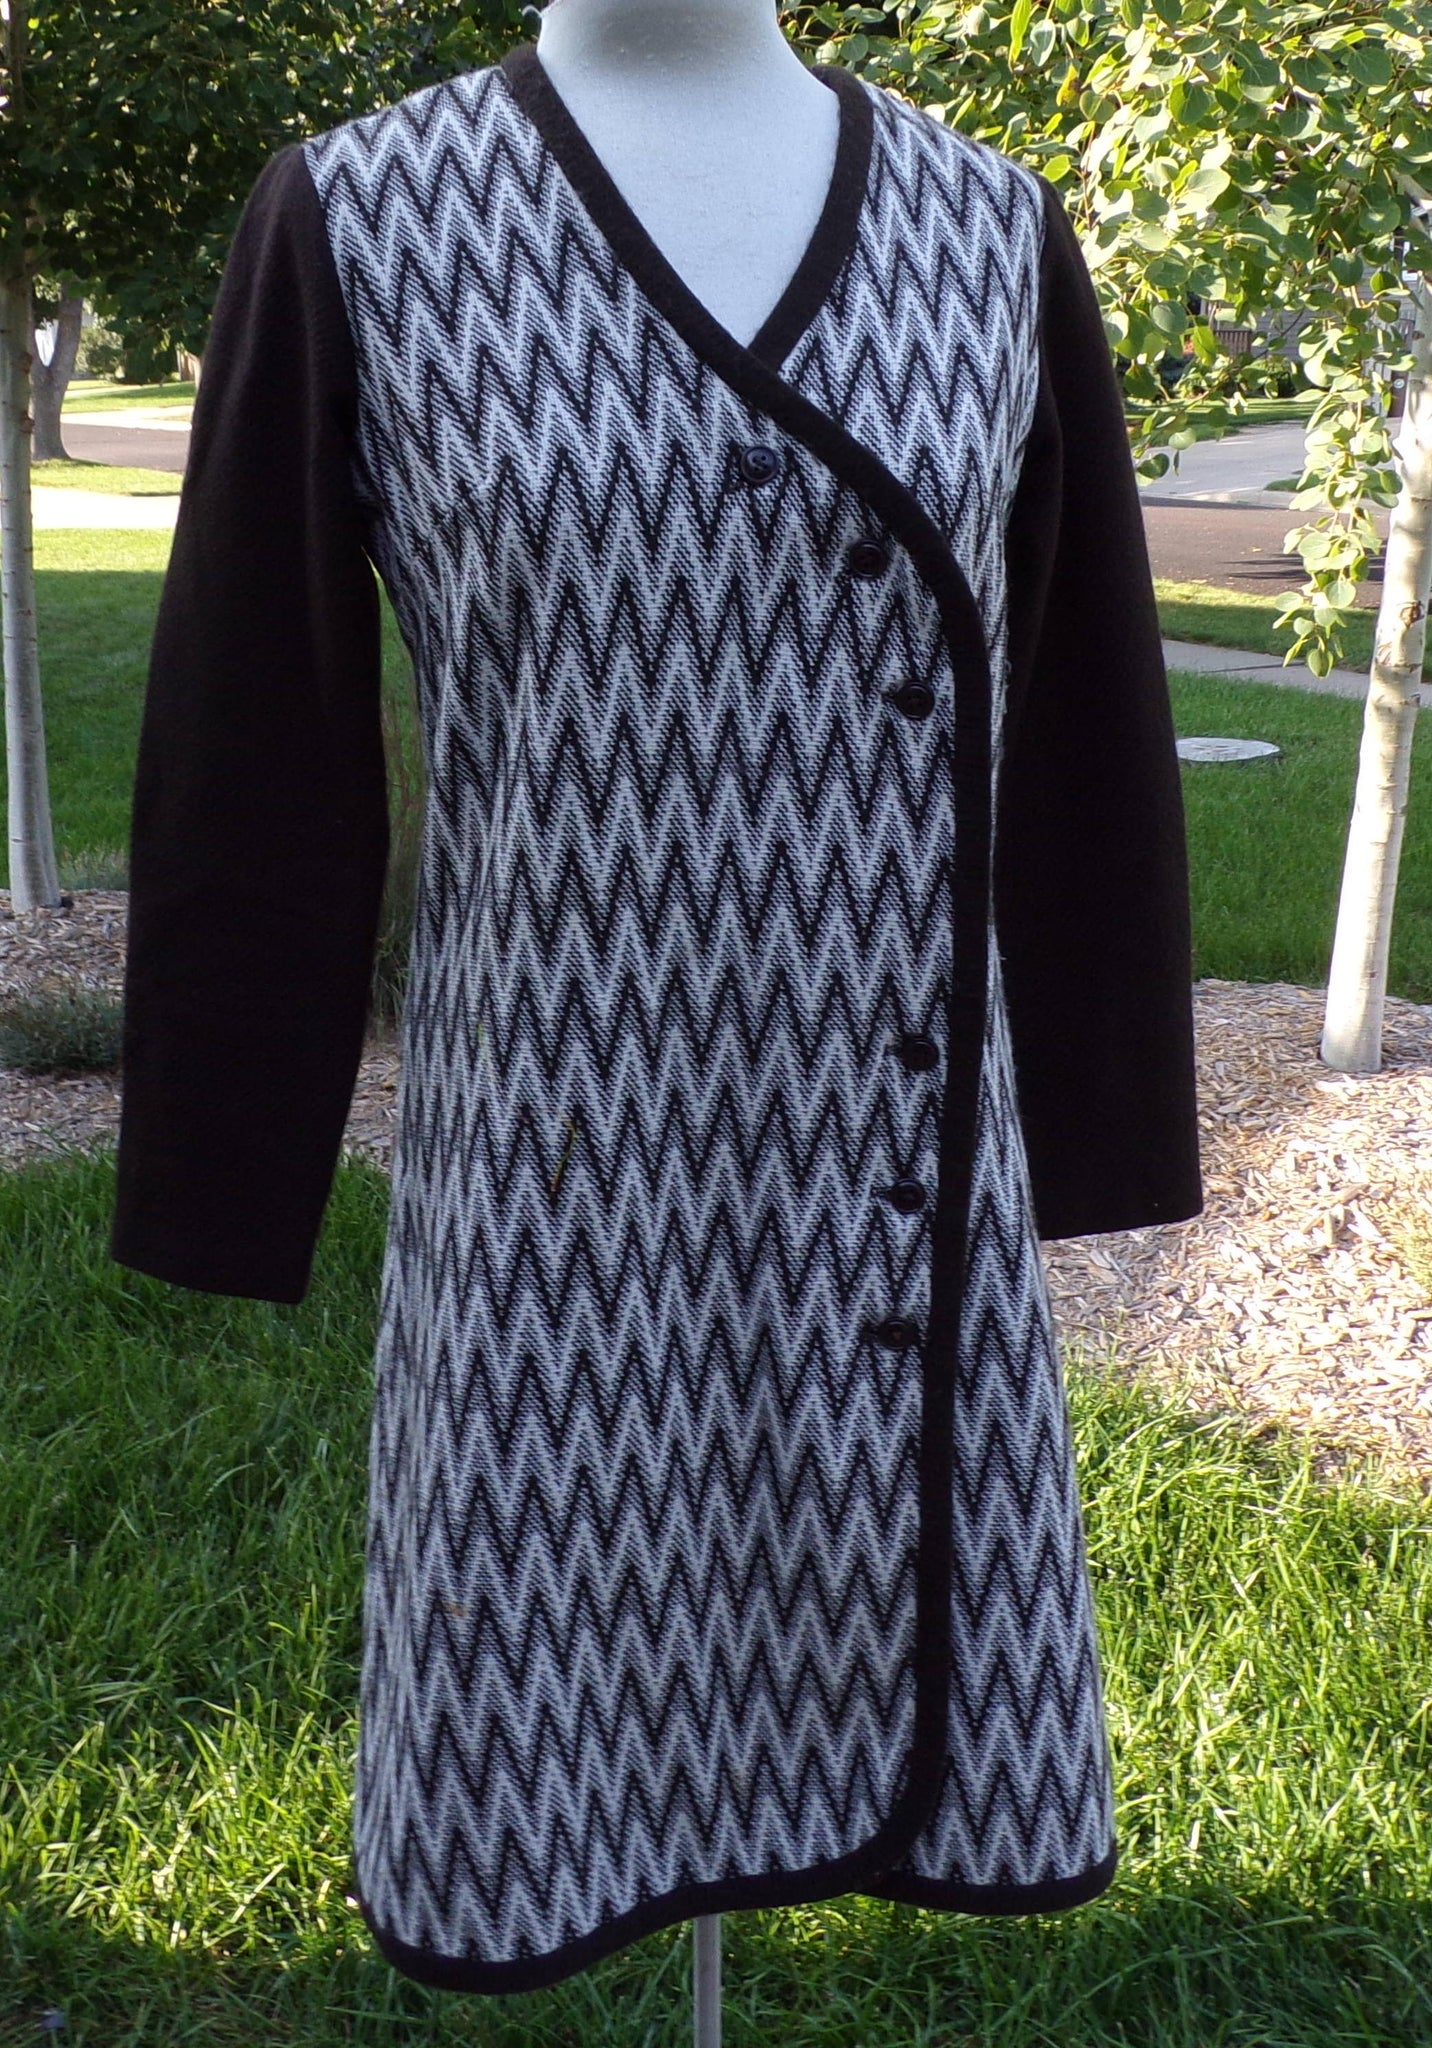 gay gibson MOD ZIG ZAG coatdress coat dress M (D9)